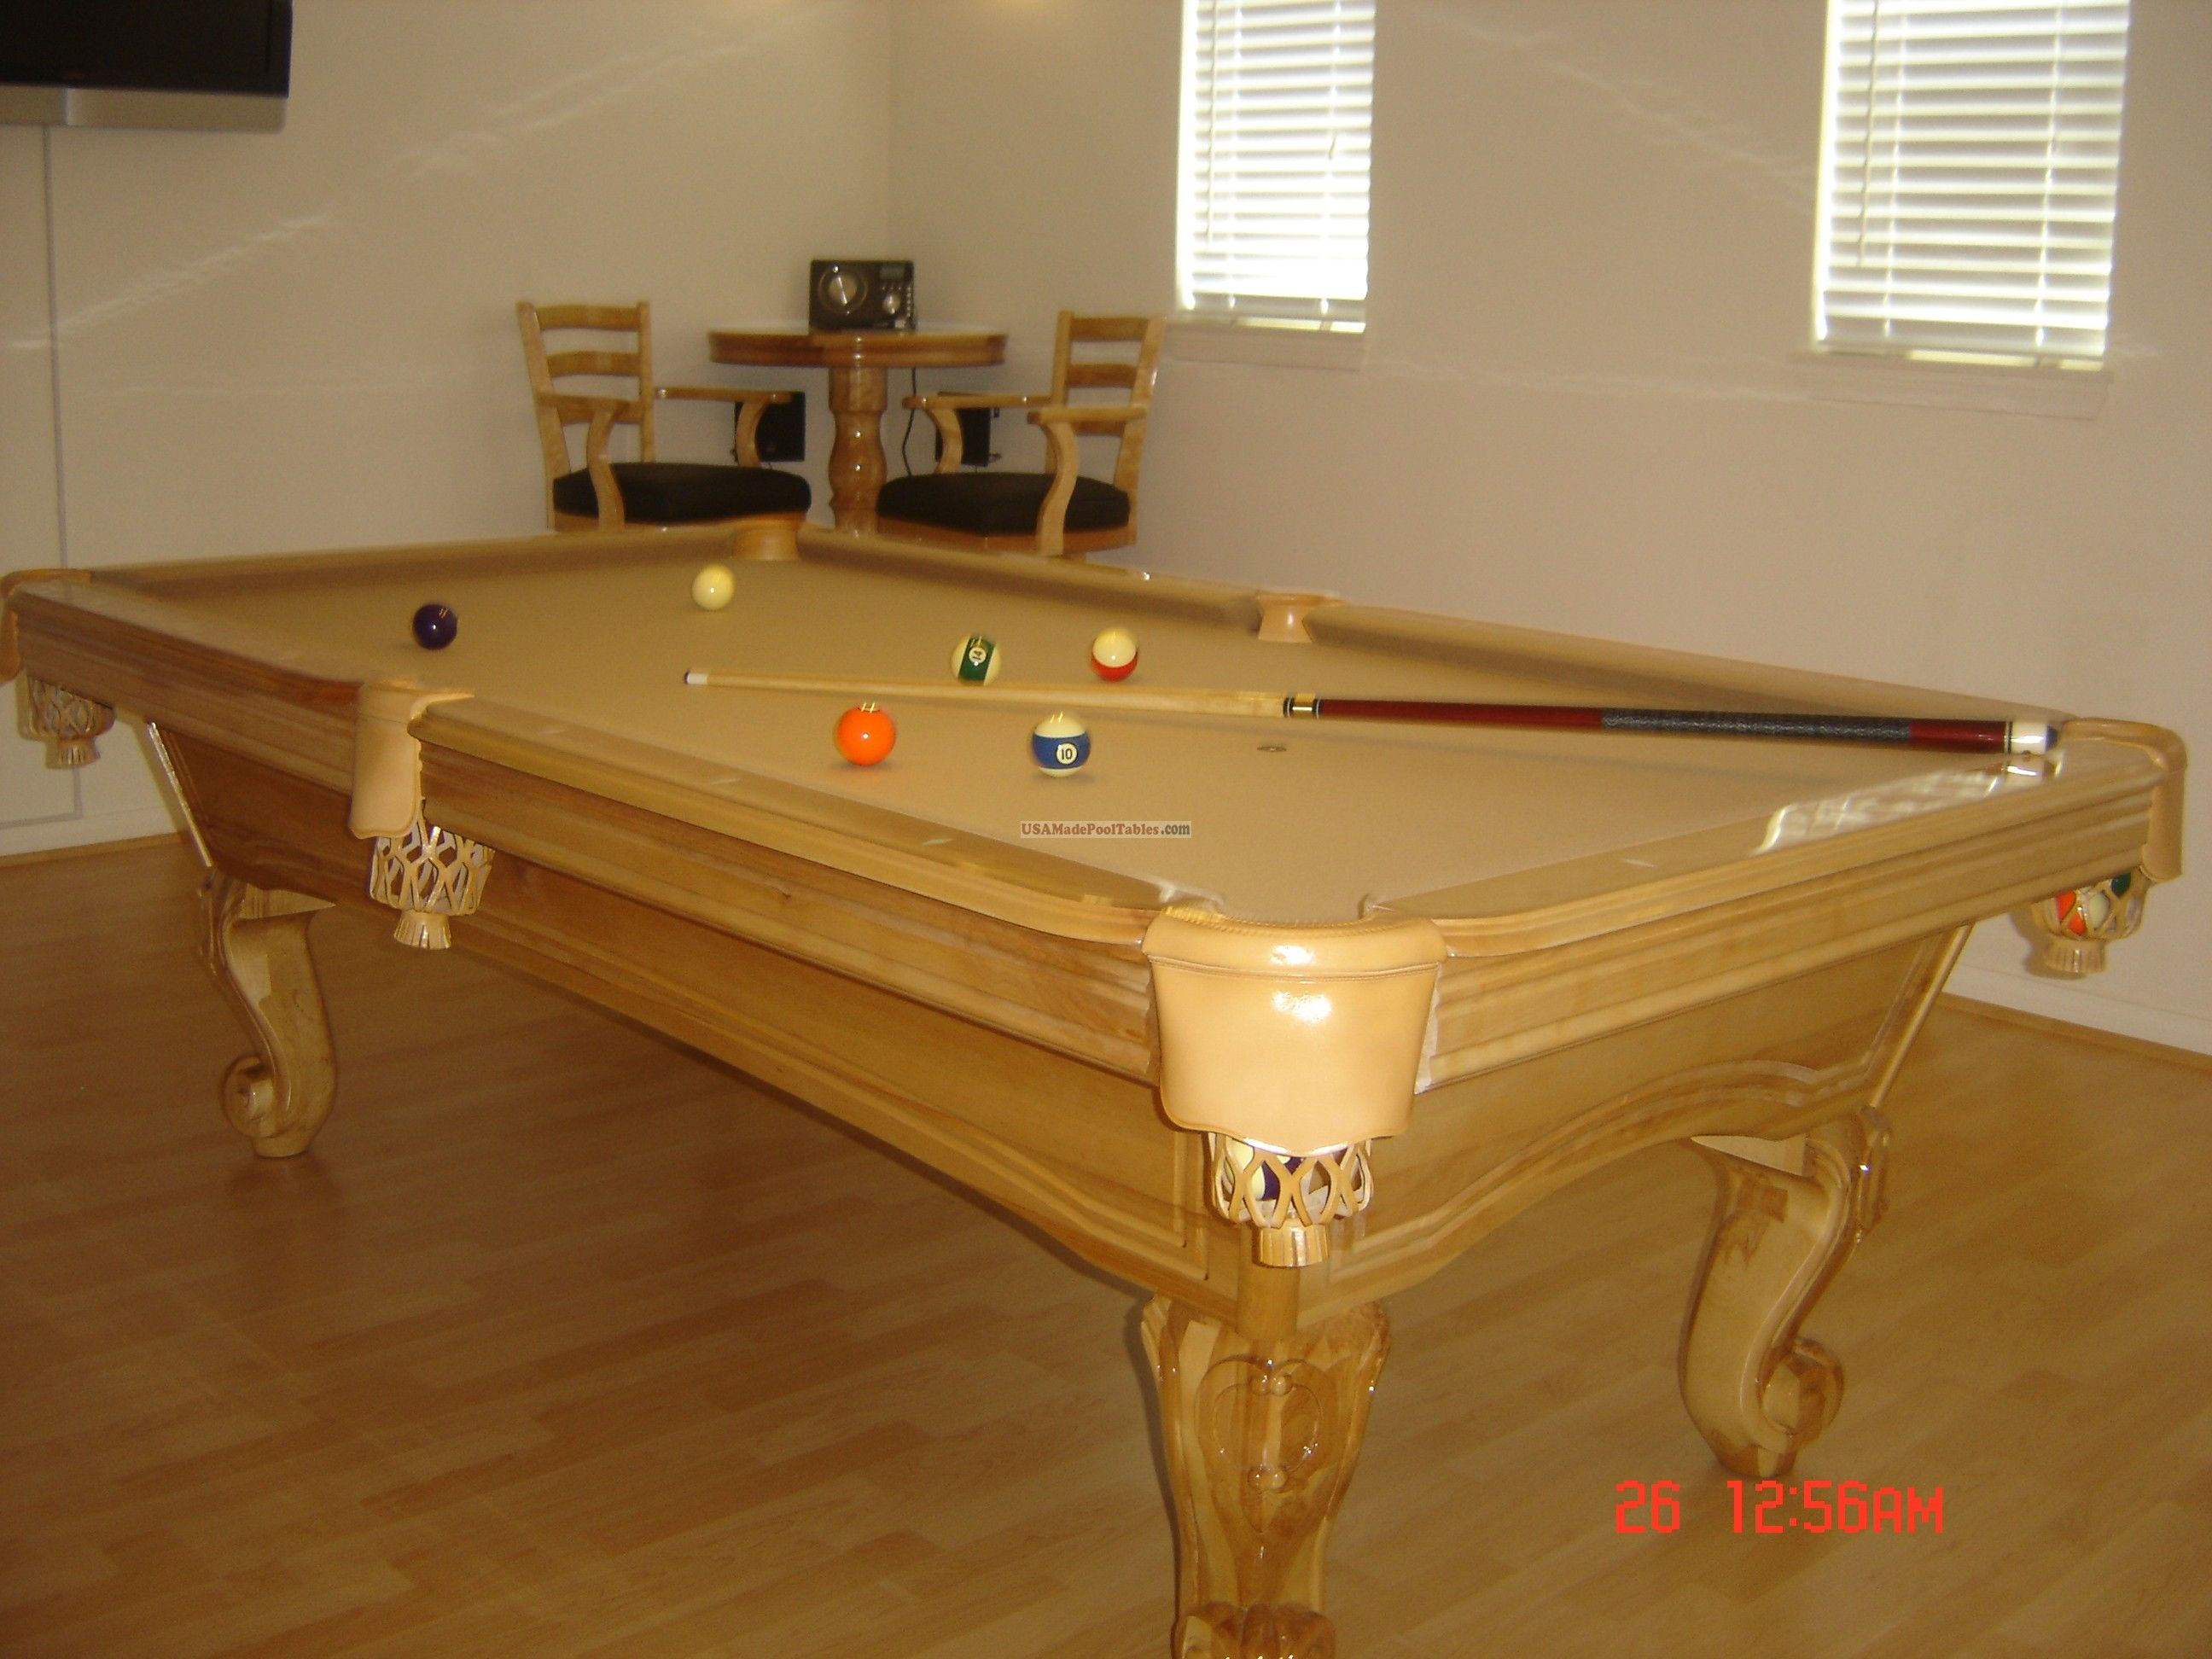 Maple Pool Table POOL TABLES POOL TABLE Garibaldi Pinterest - Pool table refelting san diego